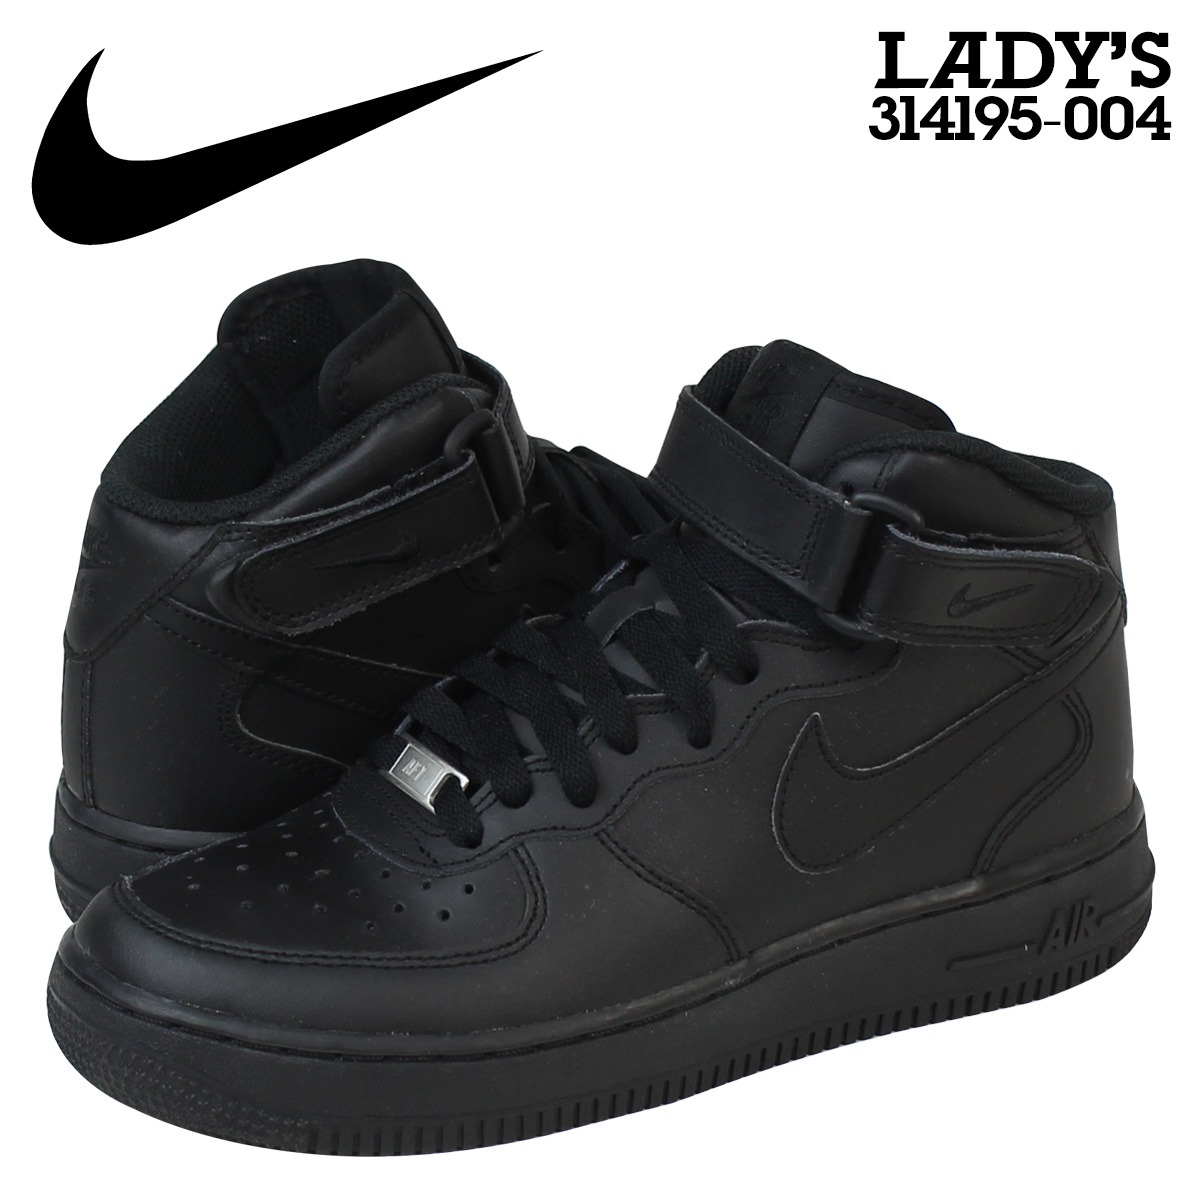 the latest 3174e de541 Nike NIKE Womens AIR FORCE 1 MID GS sneakers air force 1 mid leather Kids  Girls ...